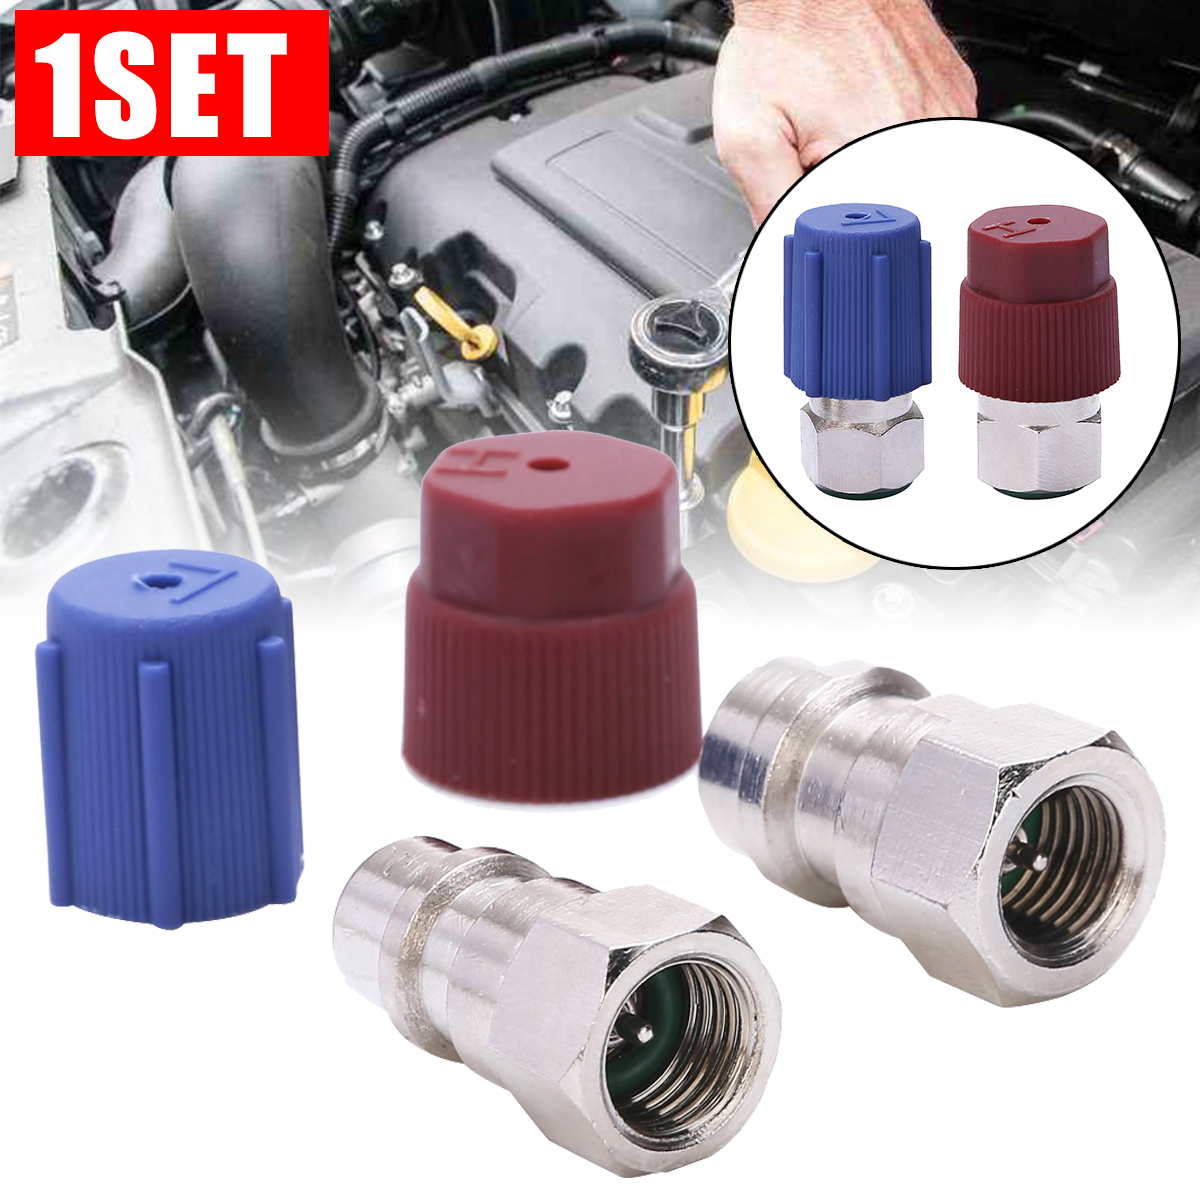 2pcs Red Blue Car Retrofit Conversion Adapter <font><b>1/4</b></font> <font><b>SAE</b></font> R12 To R134a High/Low Voltage AC Fitting For Automobiles Air Conditioner image